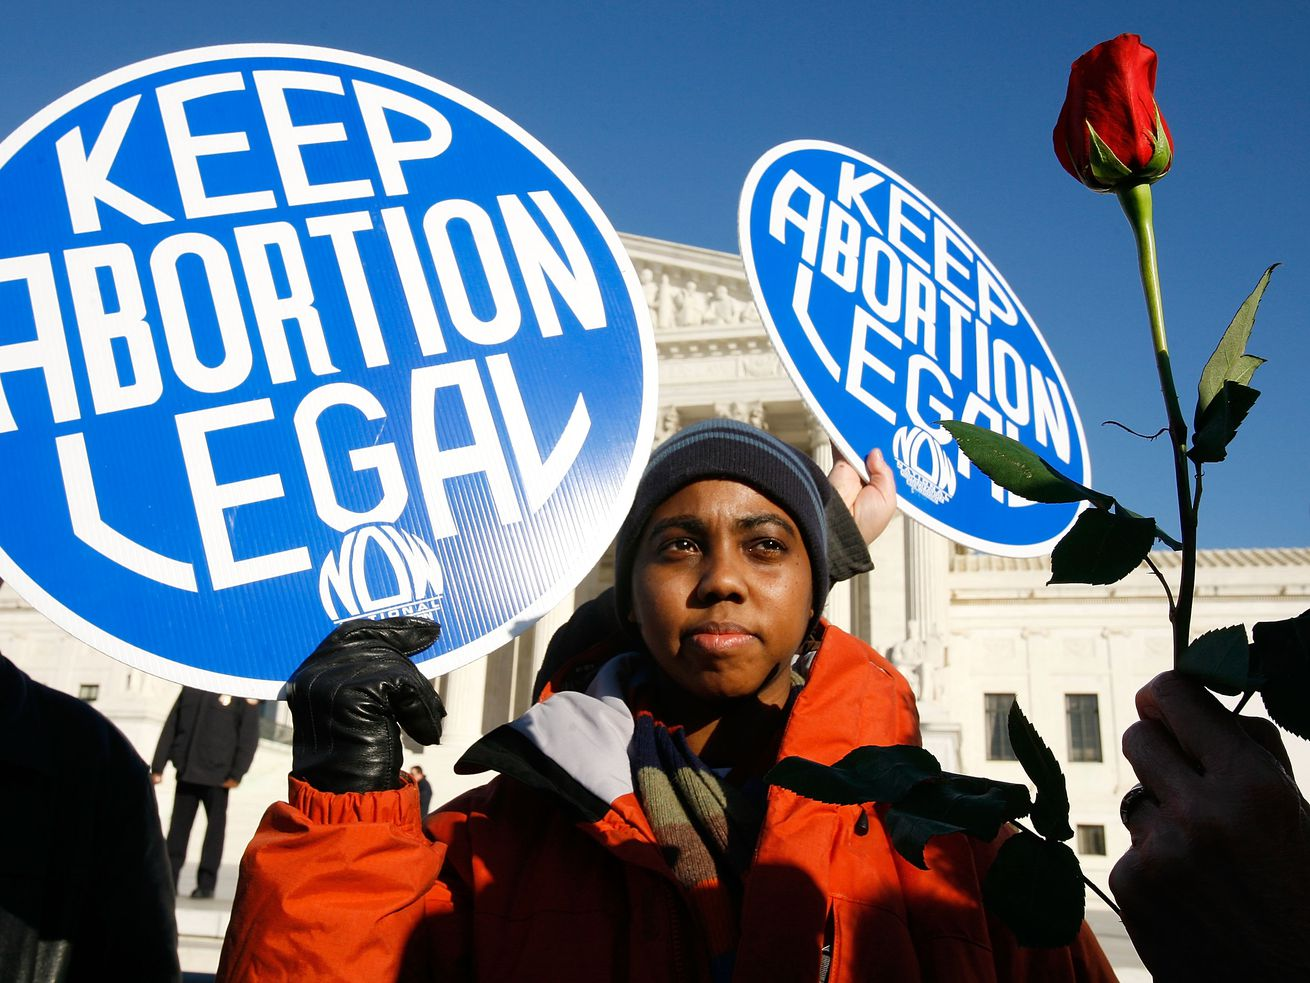 Activist Lisa King demonstrates for abortion access in front of the US Supreme Court.